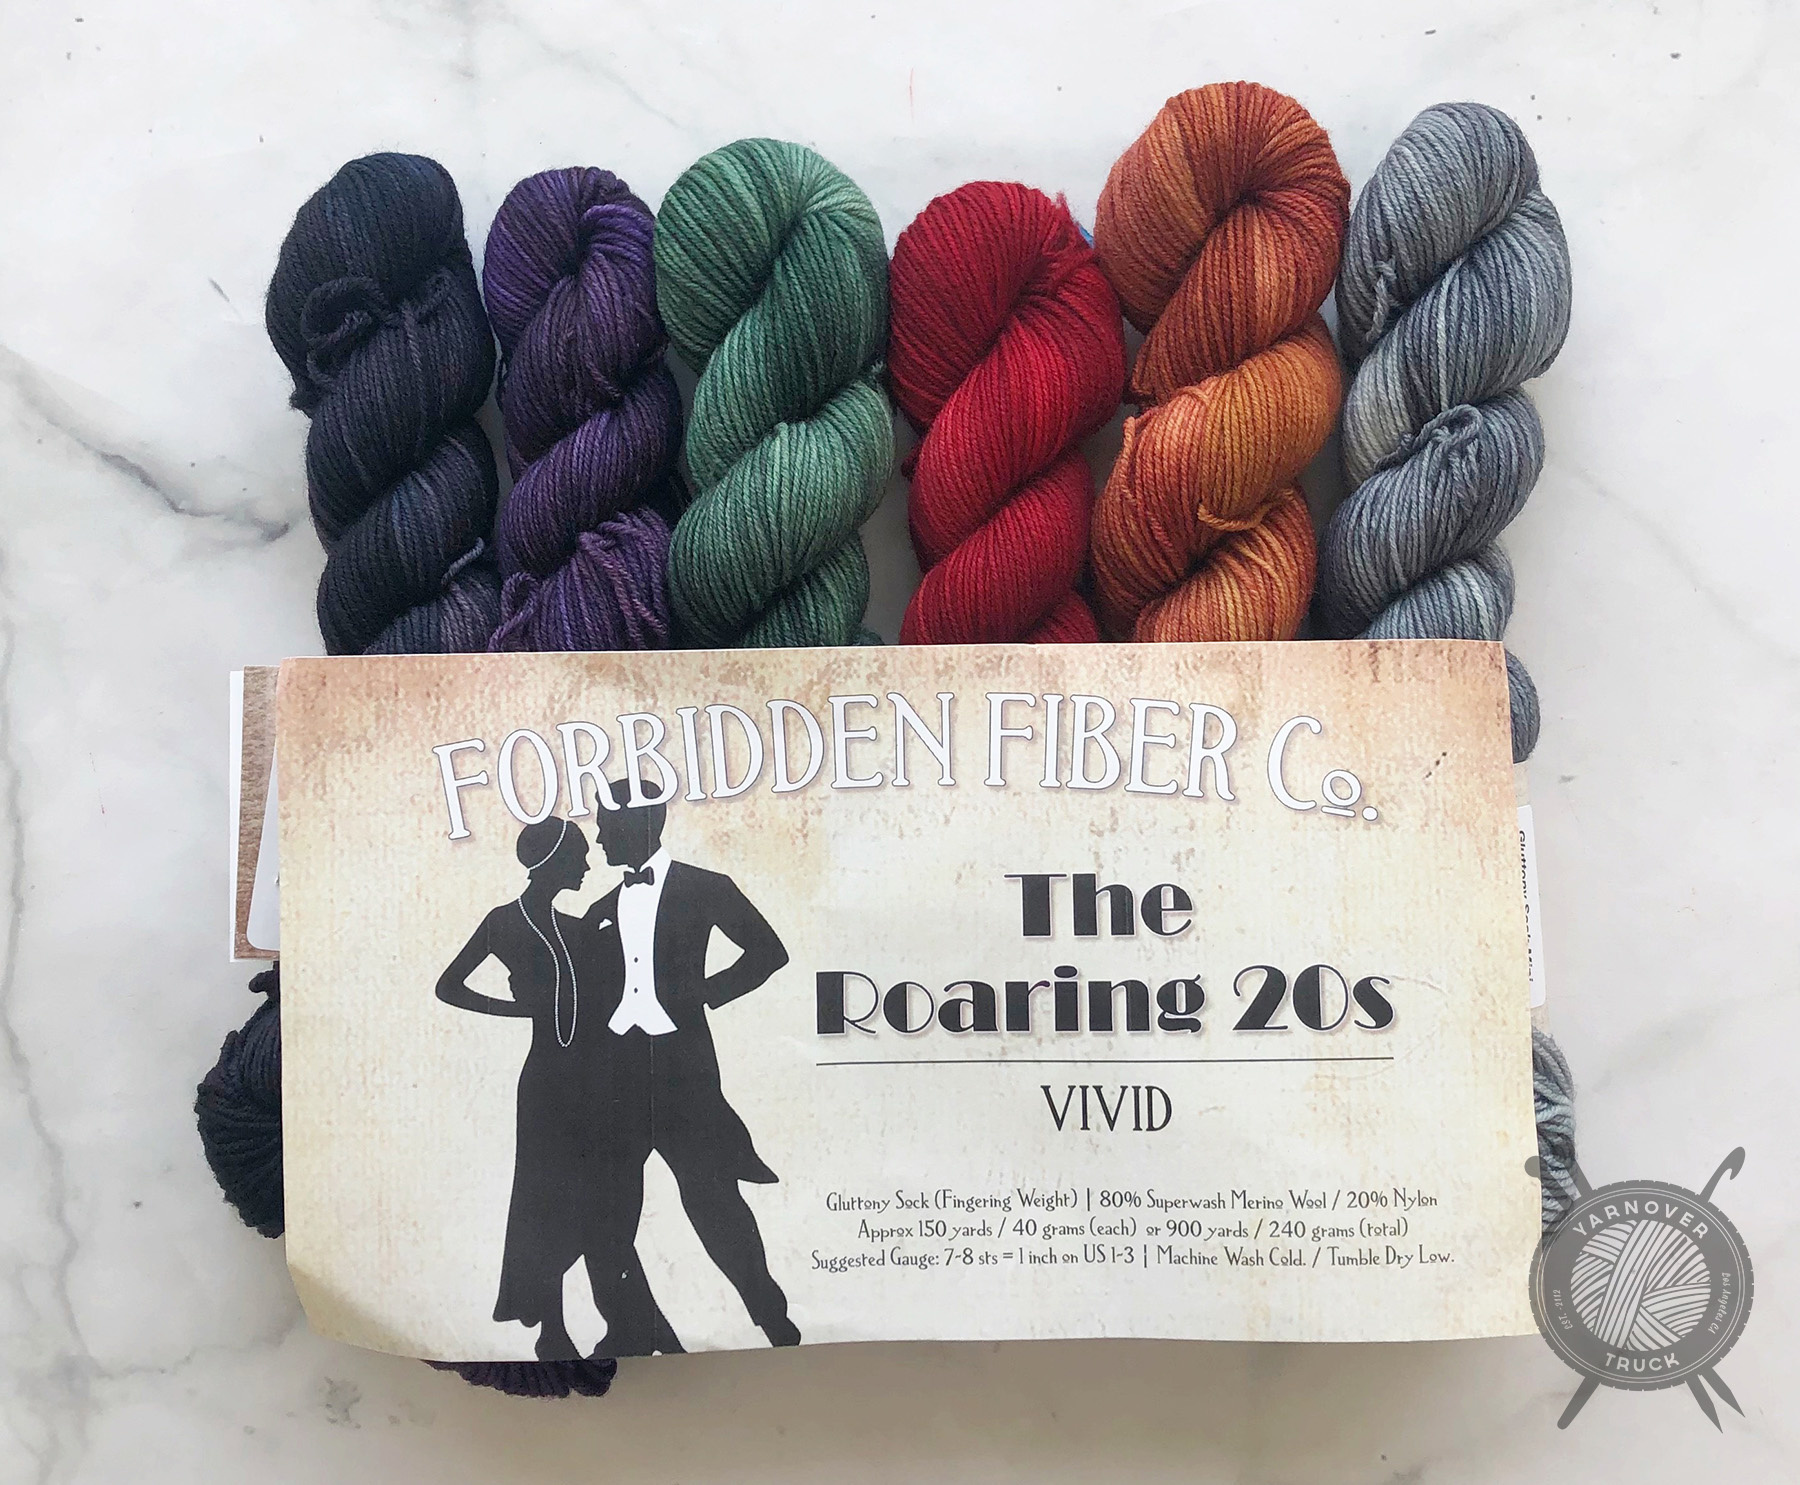 Forbidden Fiber Co. Roaring 20's Vivid Mini Set Collection on Gluttony Sock from Forbidden Fiber Co.